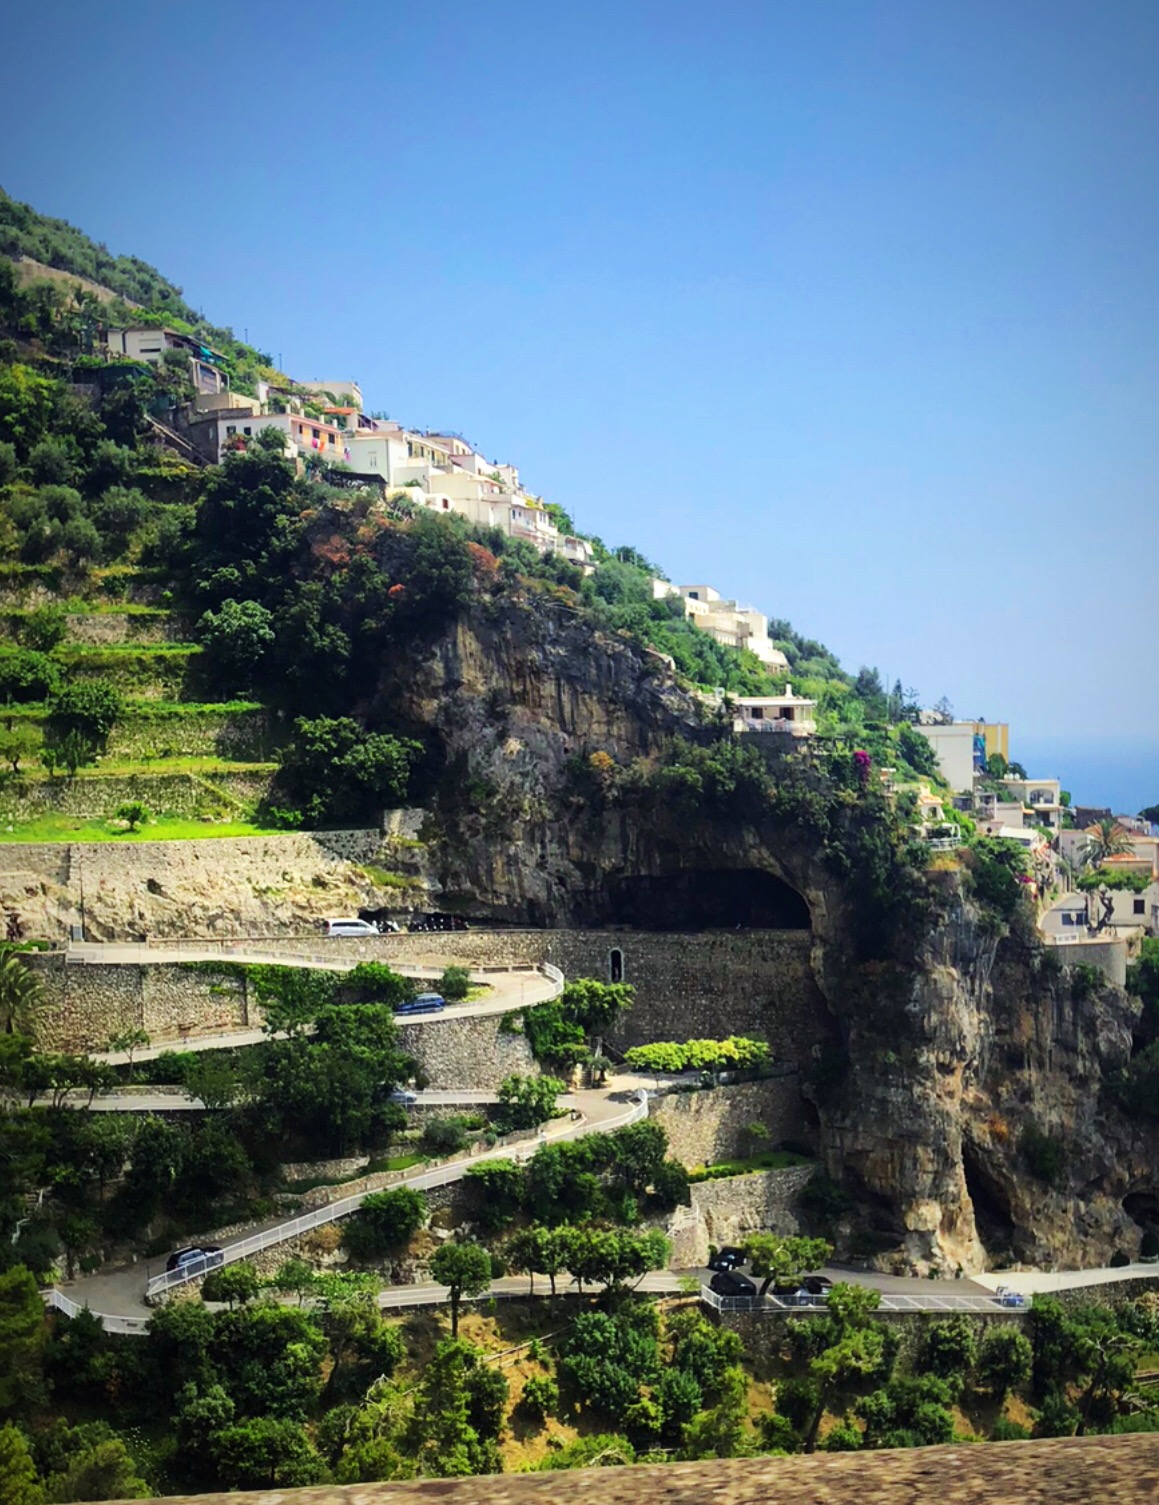 A typical road on the Amalfi Coast - minus traffic